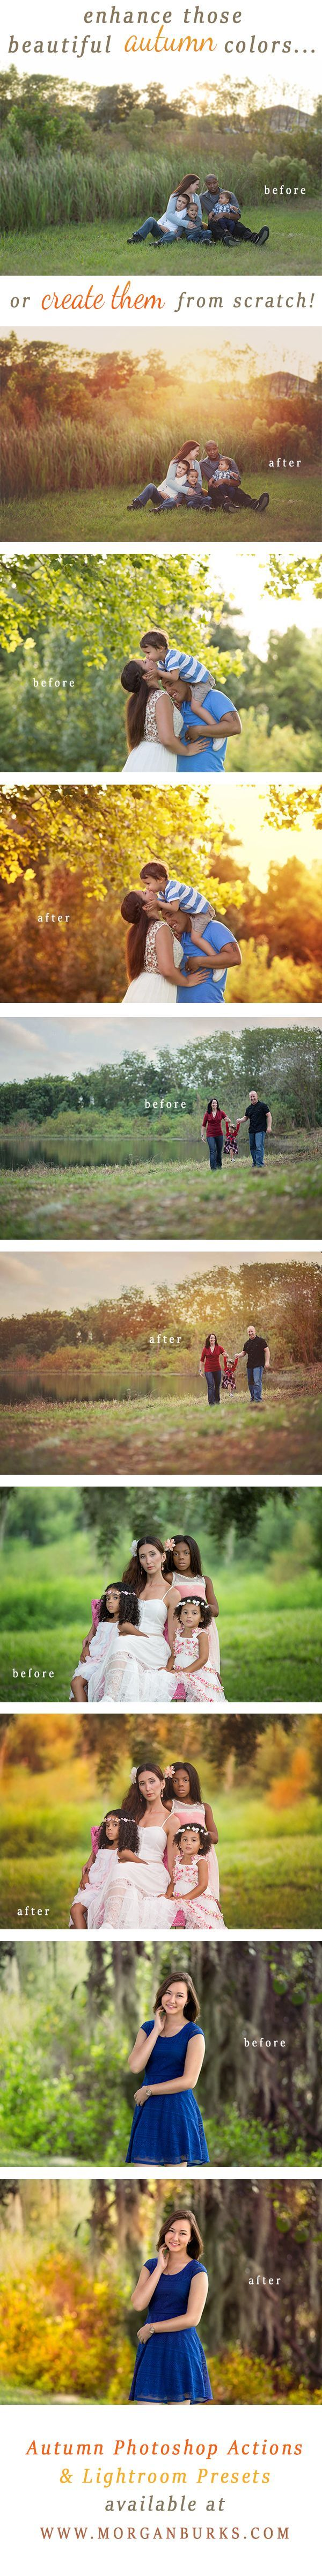 Gorgeous Autumn Photoshop Actions & Lightroom Presets! | Find a tutorial and a free sample at www.morganburks.com